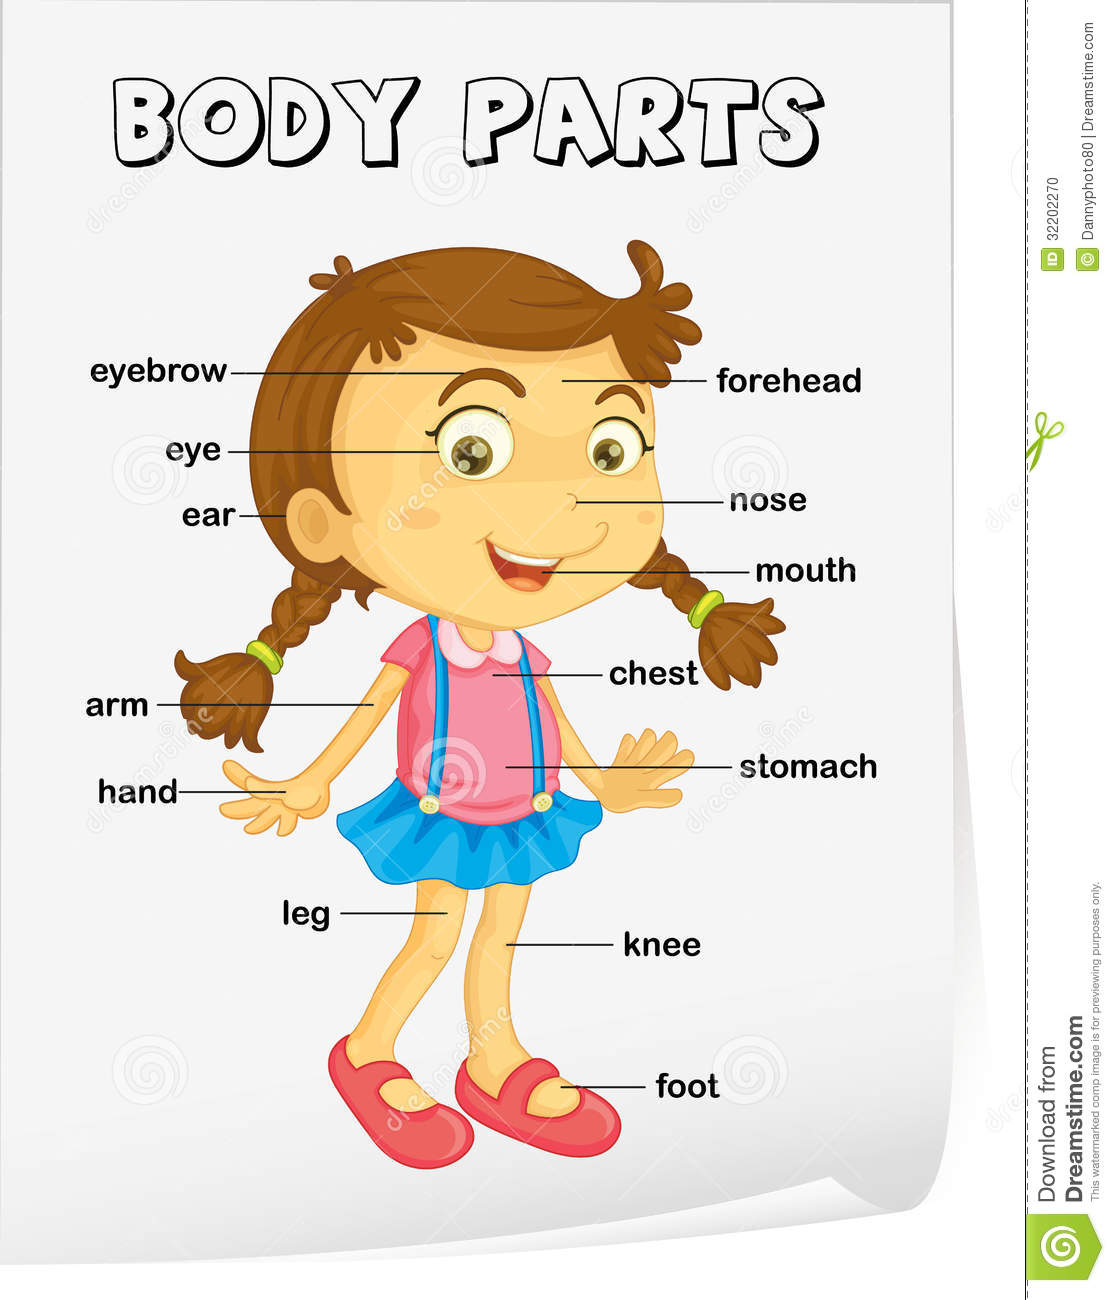 Body Parts In Spanish Worksheet For Kids Vocabulary worksheet - parts